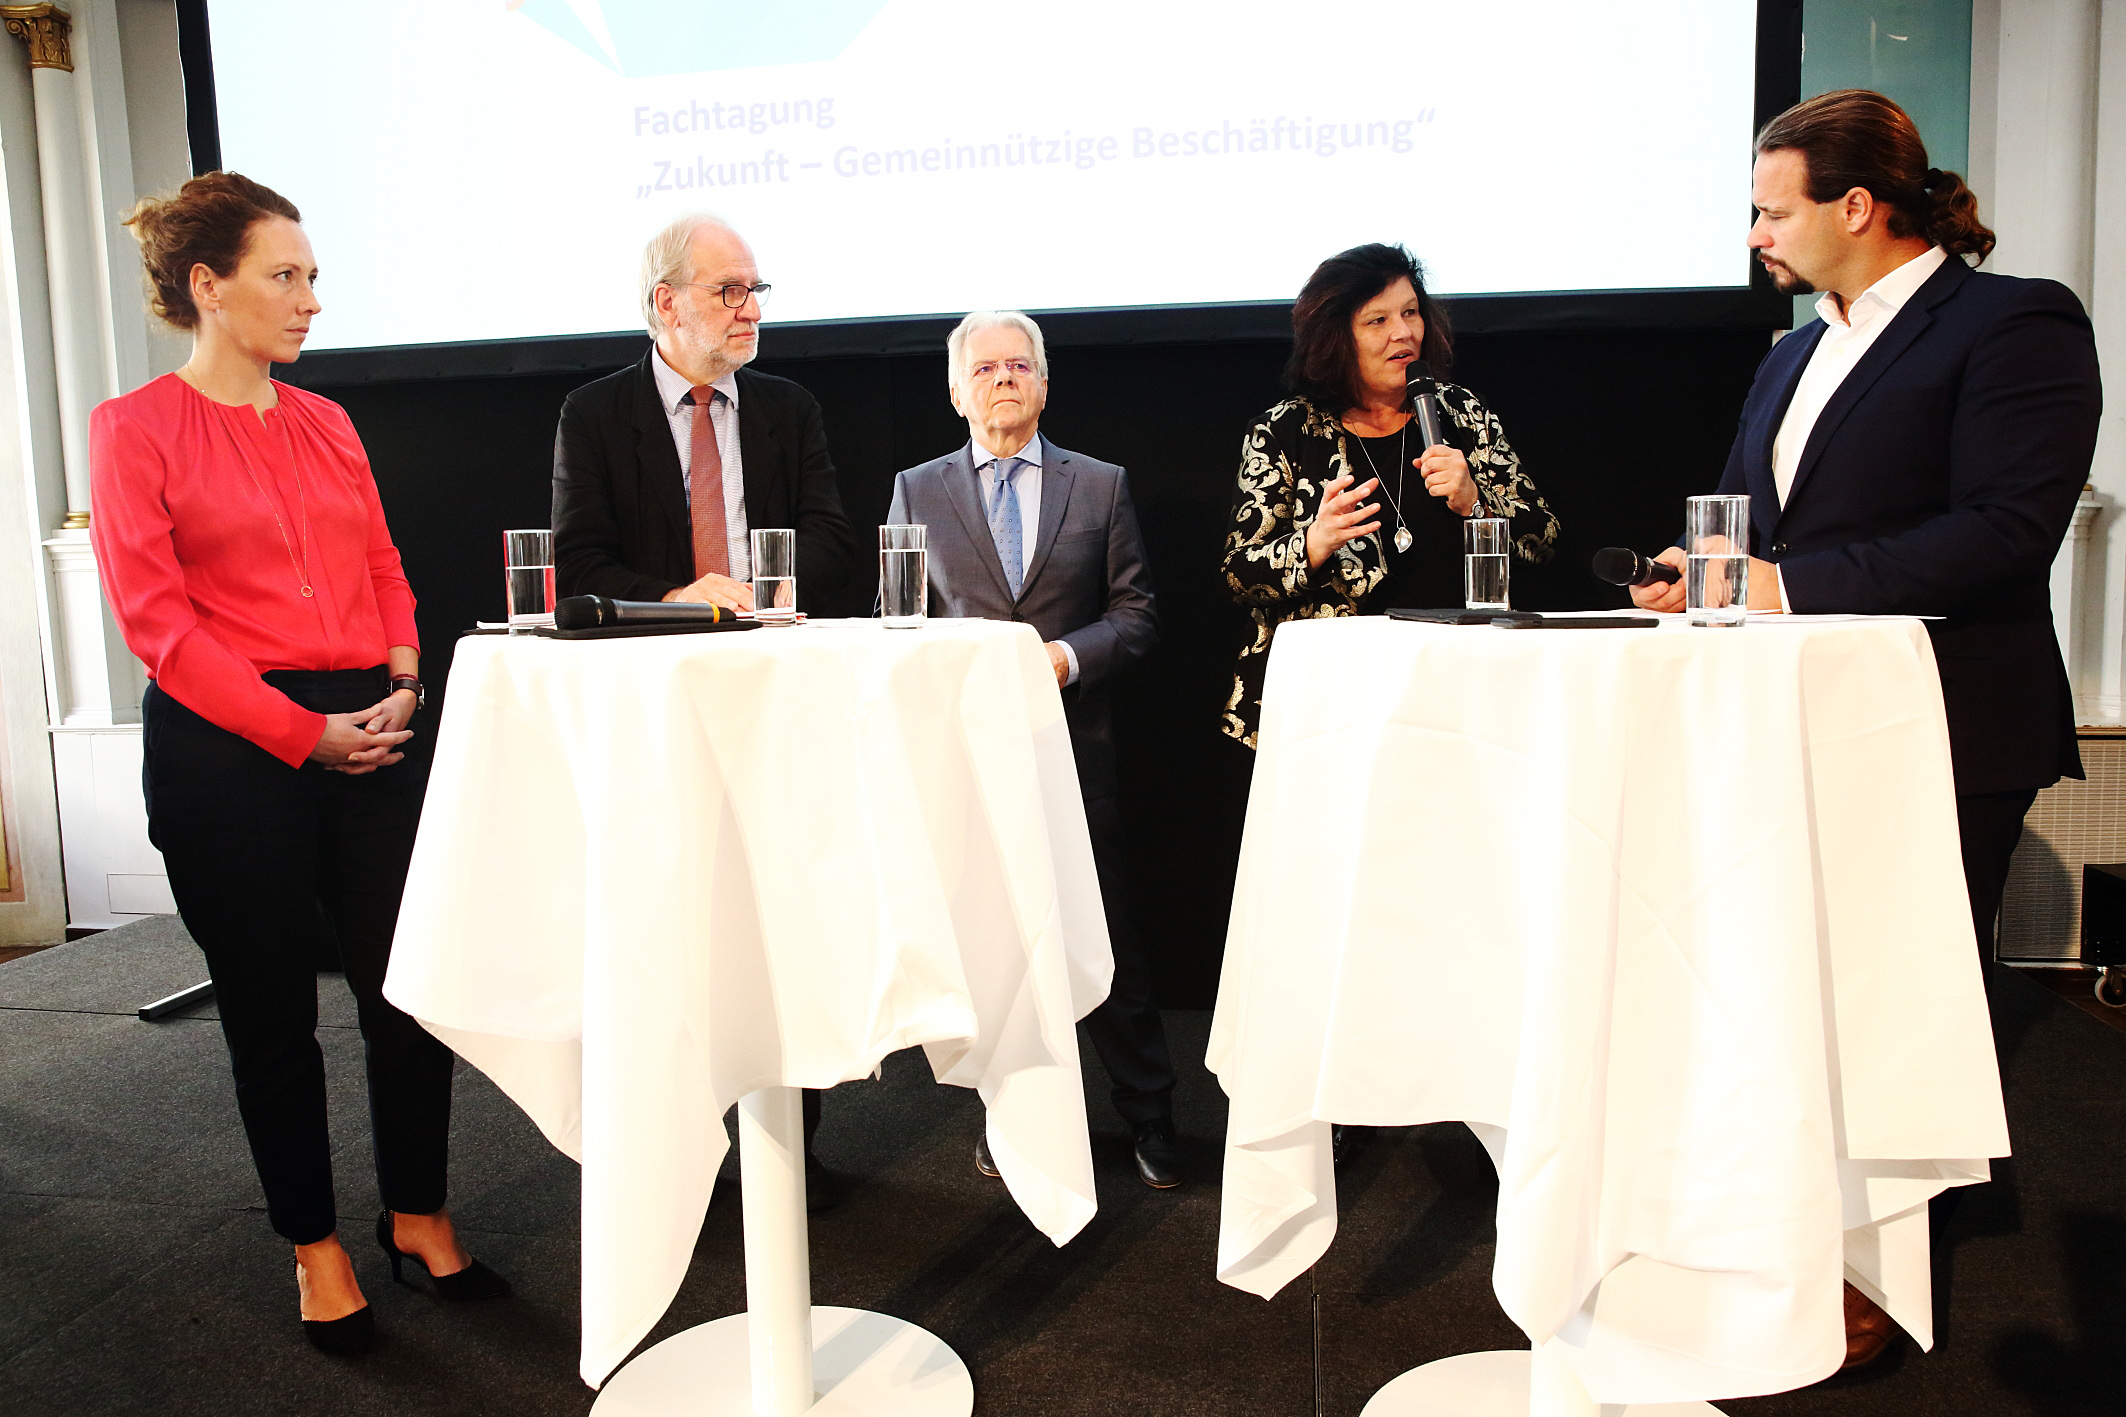 20 Jahre St:WUK, Podiumsdiskussion